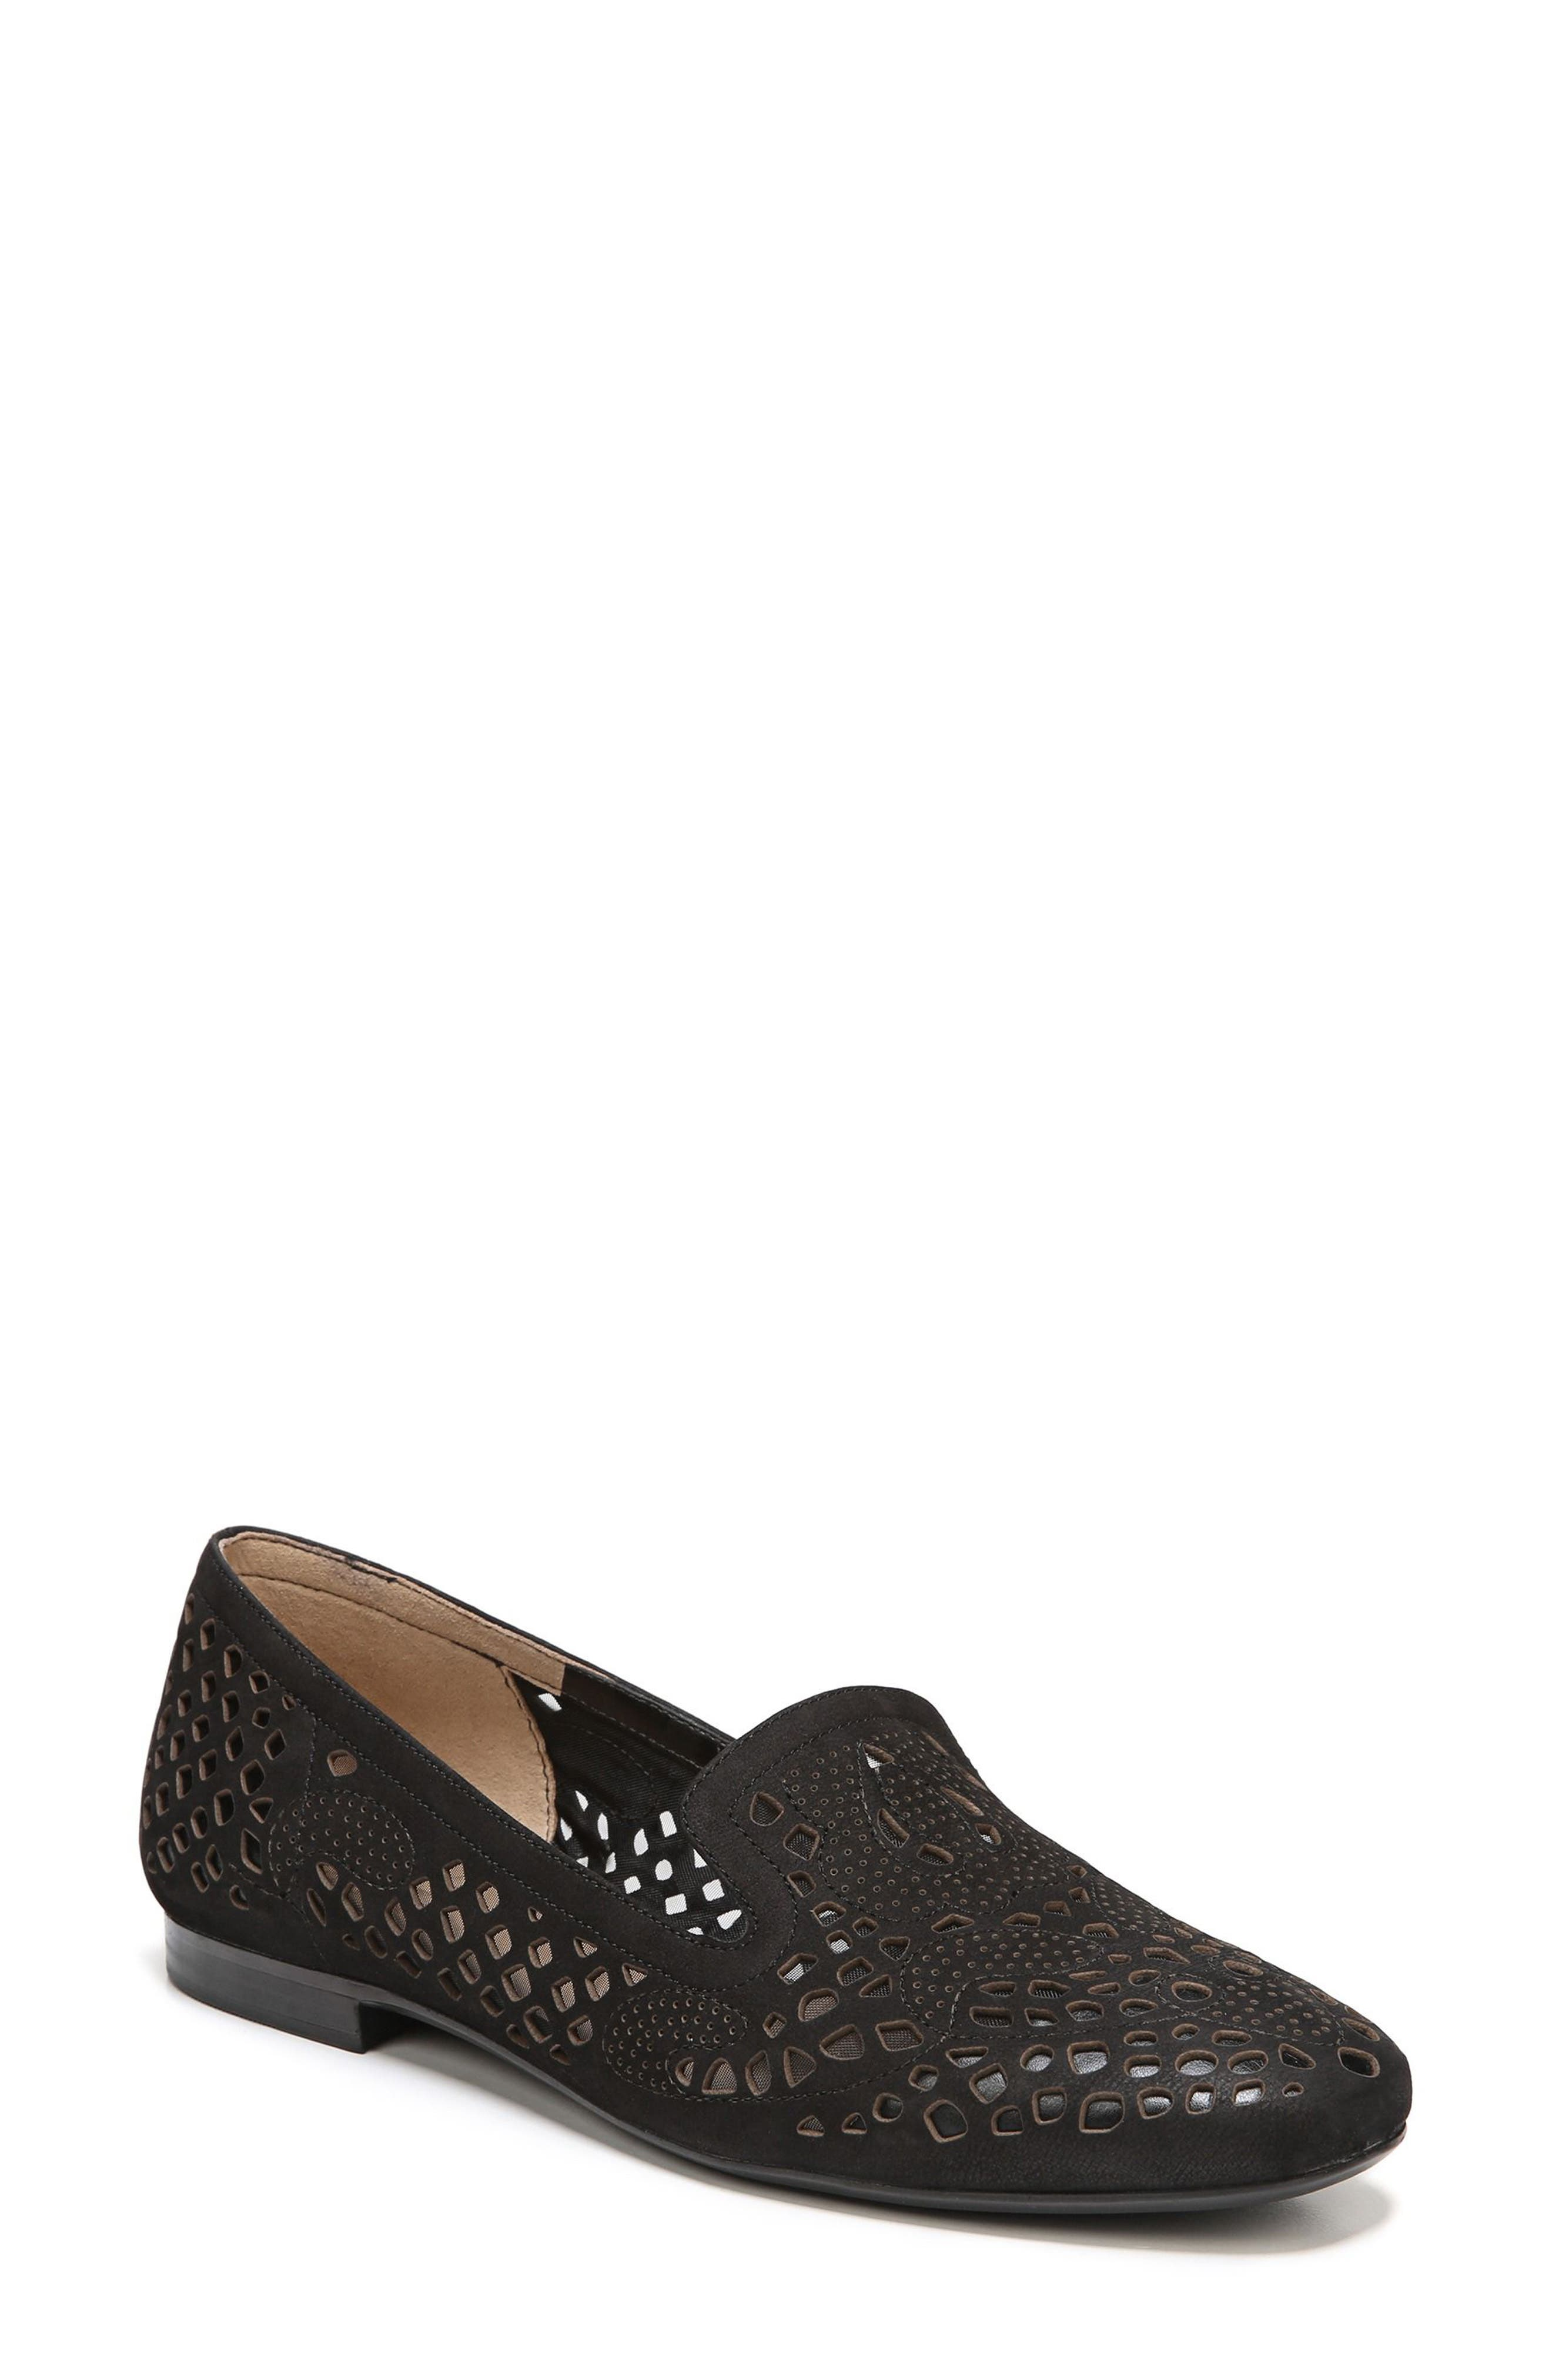 Eve Loafer,                             Main thumbnail 1, color,